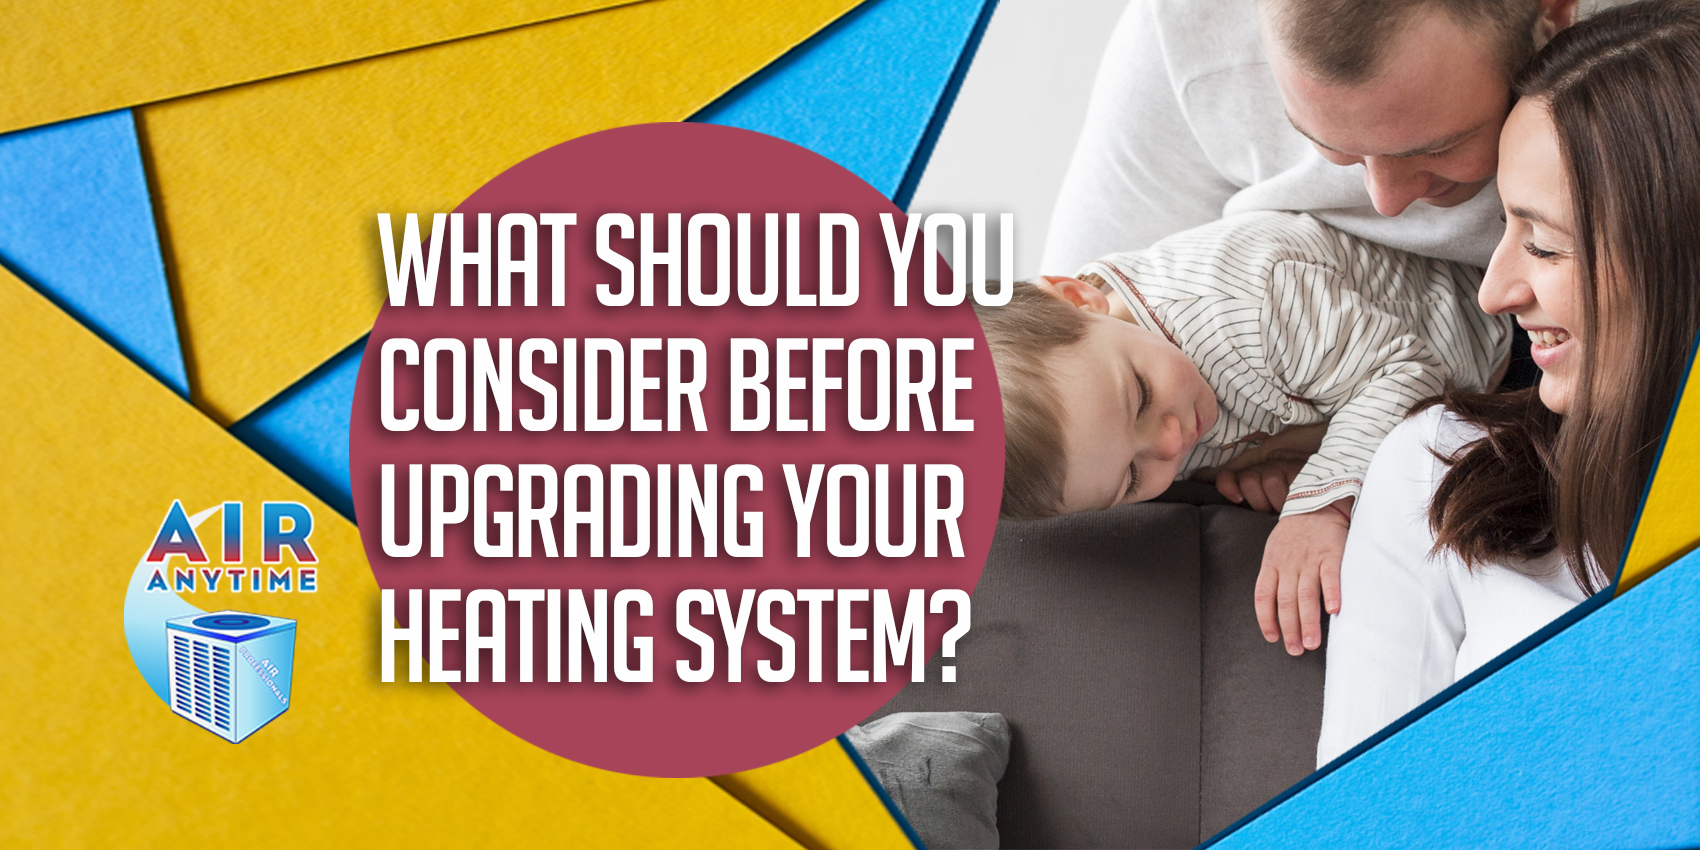 What Should You Consider Before Upgrading Your Heating System?